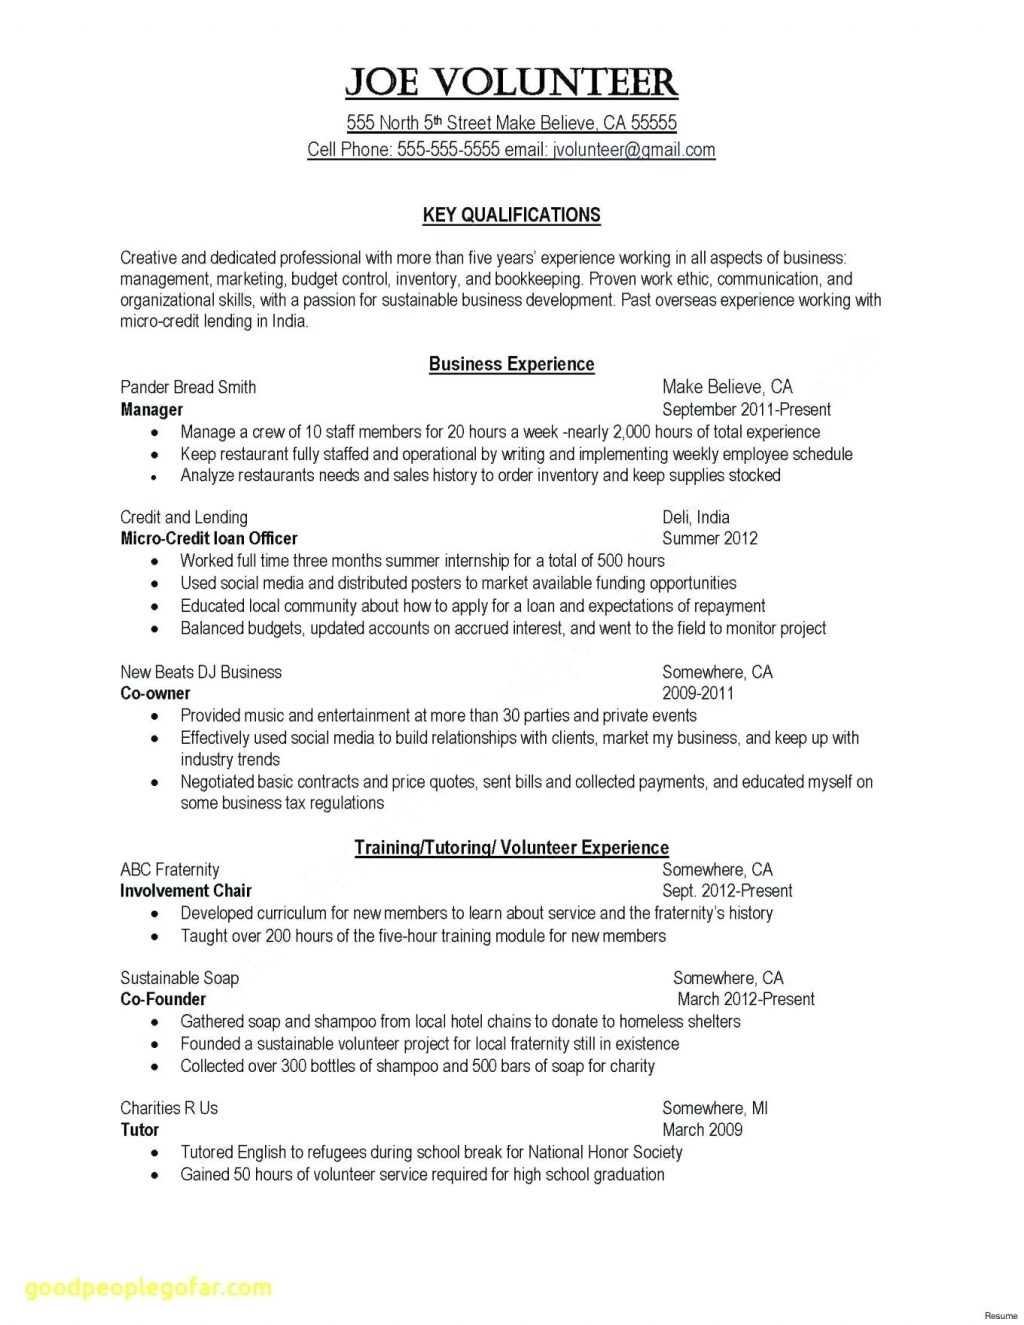 Proofreading Worksheets High School Peer Editing Worksheet Middle To | Proofreading Worksheets Middle School Printable